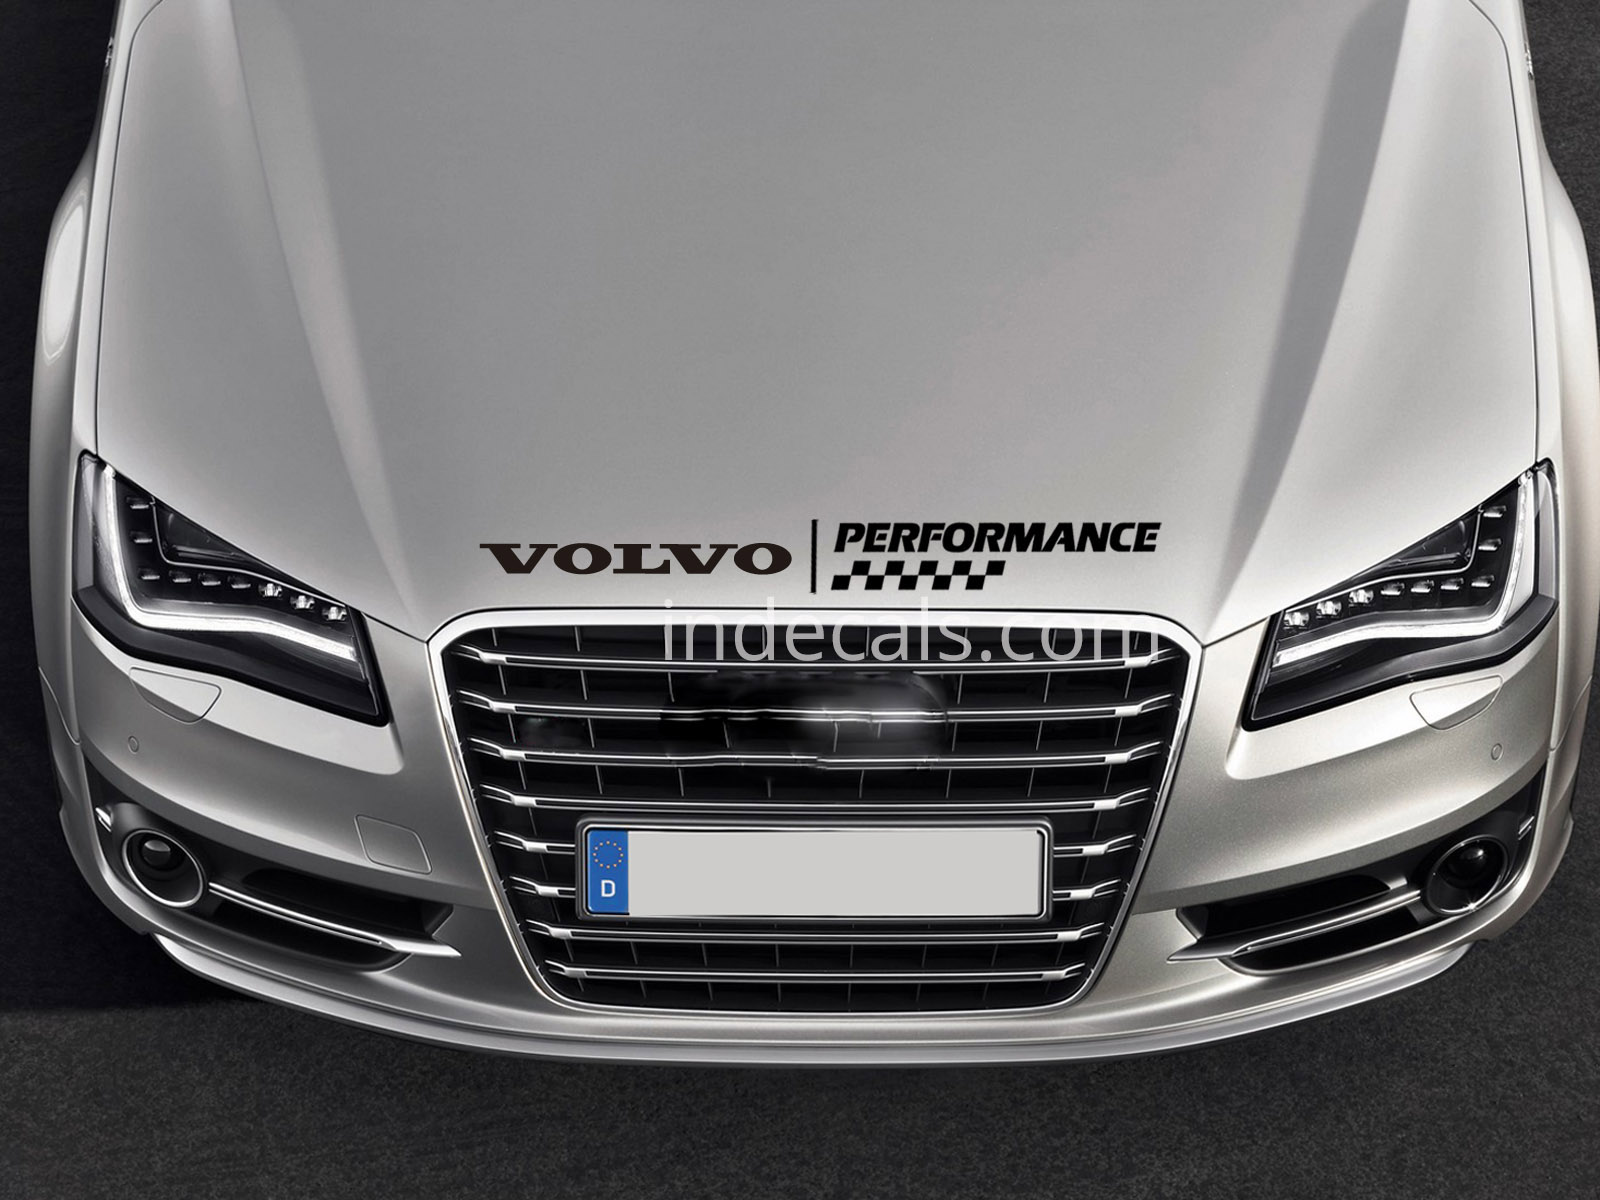 1 x Volvo Performance Sticker for Bonnet - Black